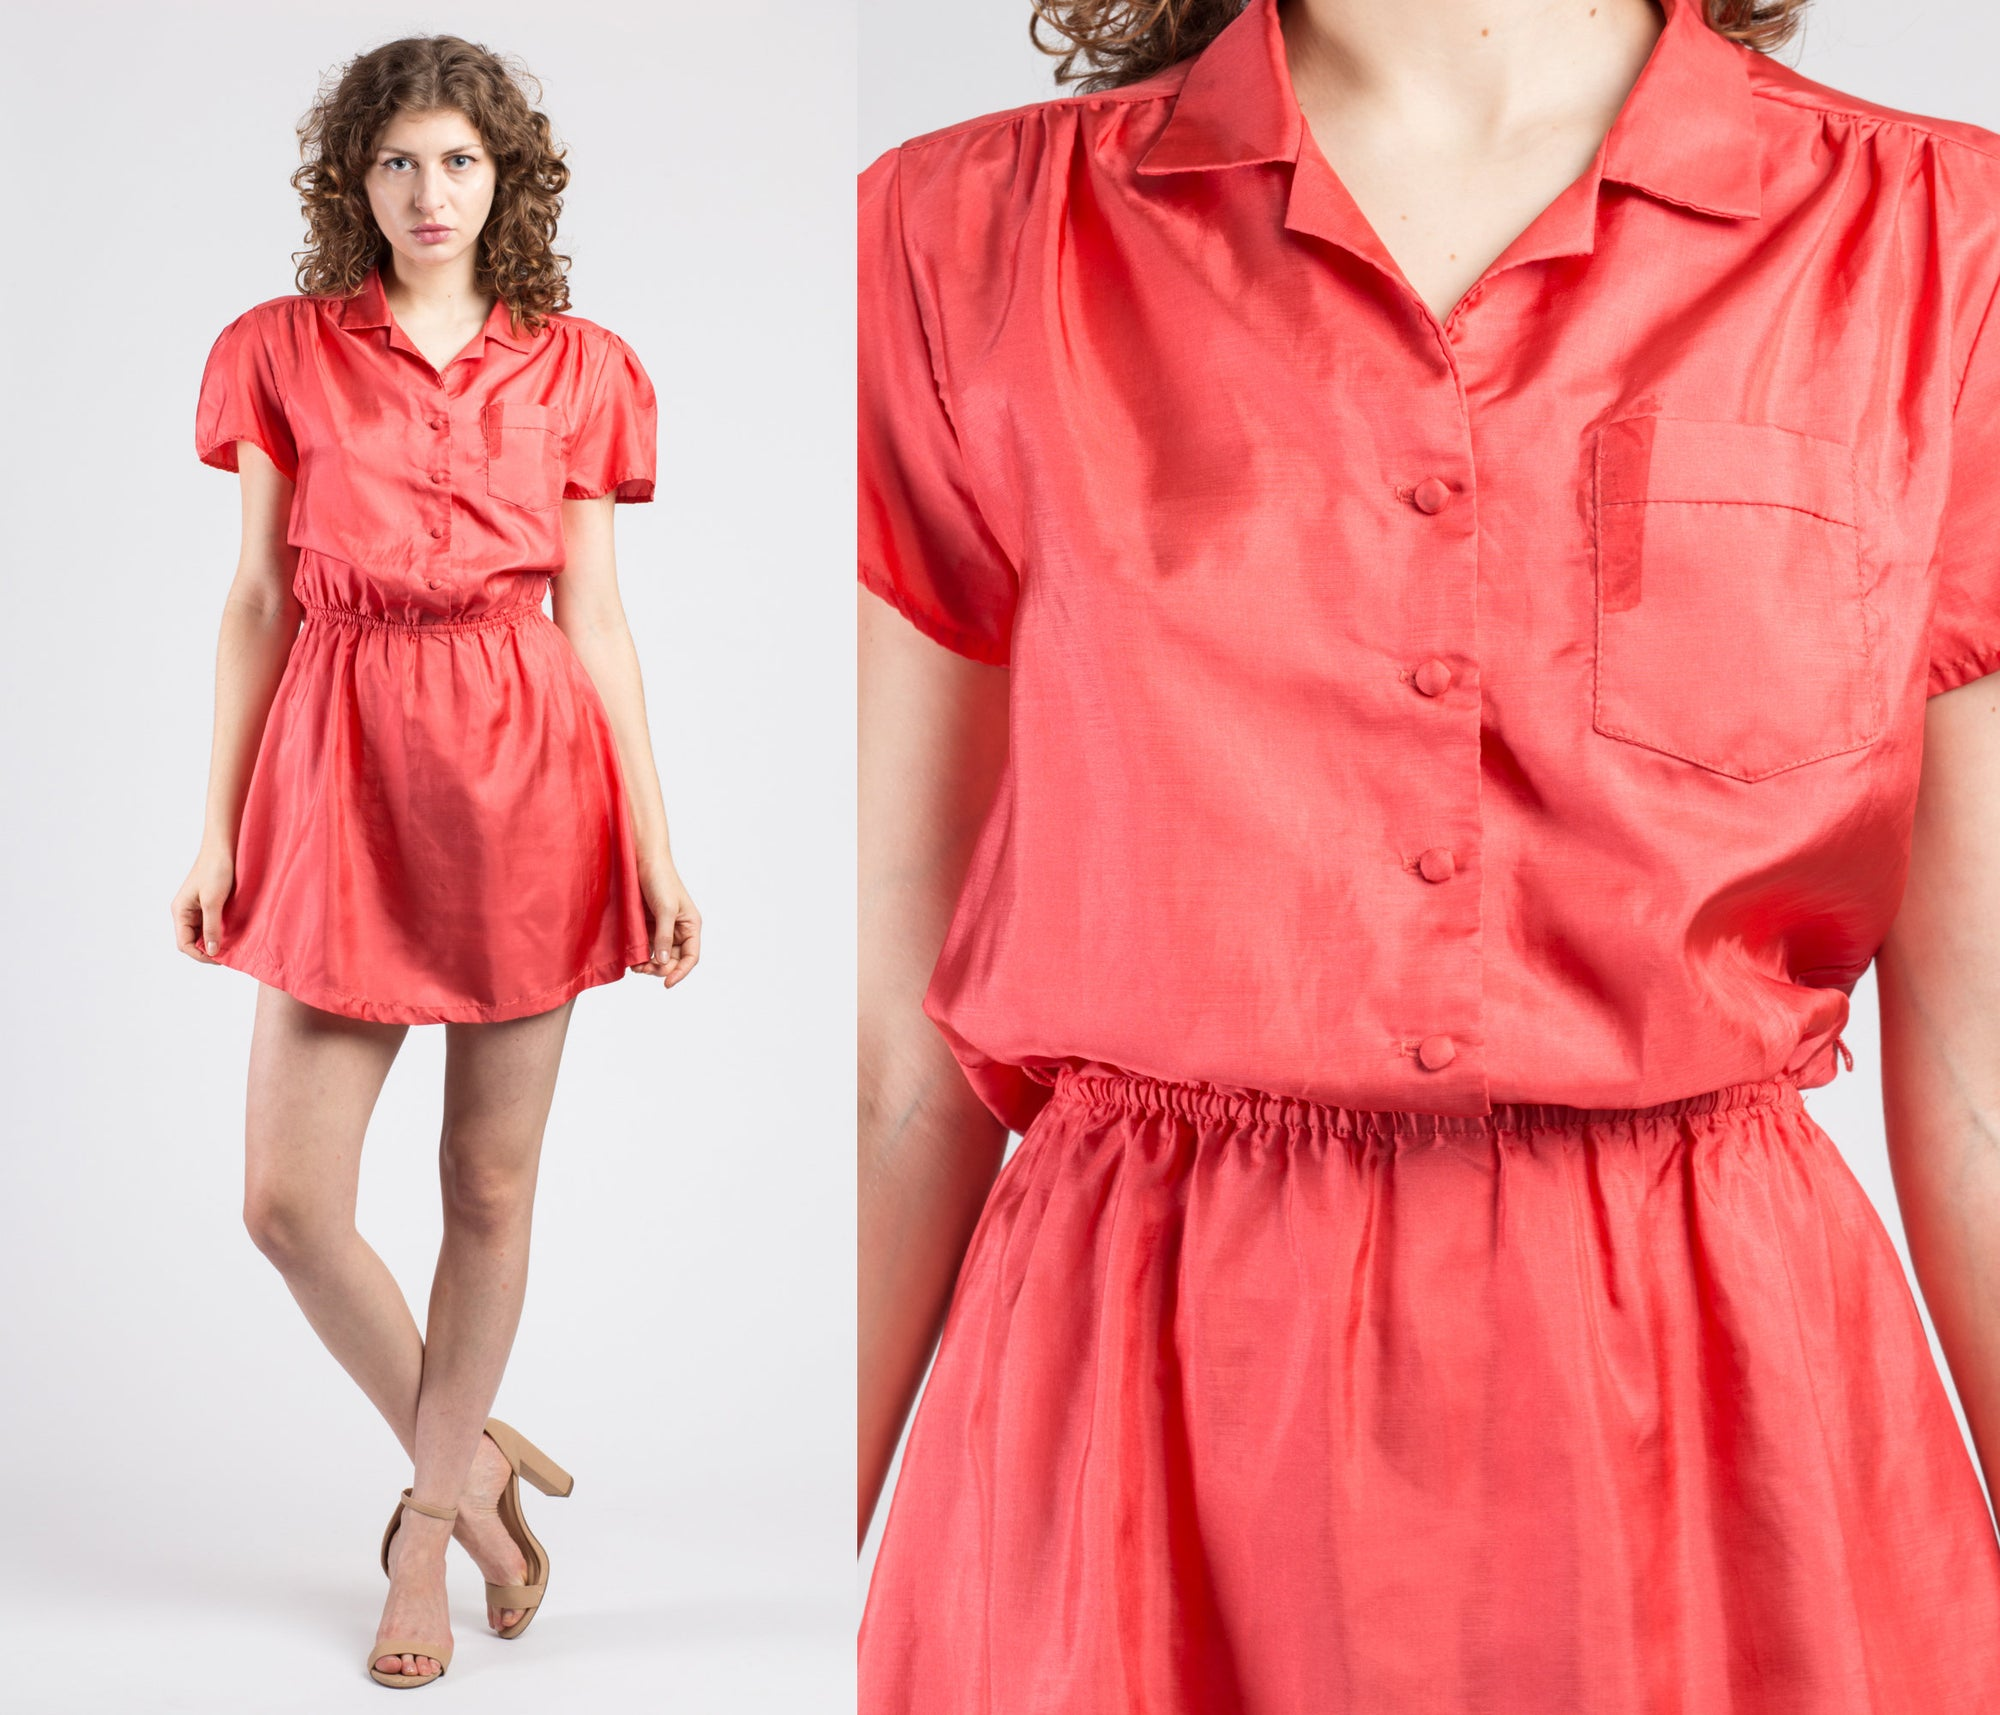 70s Shiny Coral Mini Shirt Dress - Small to Medium